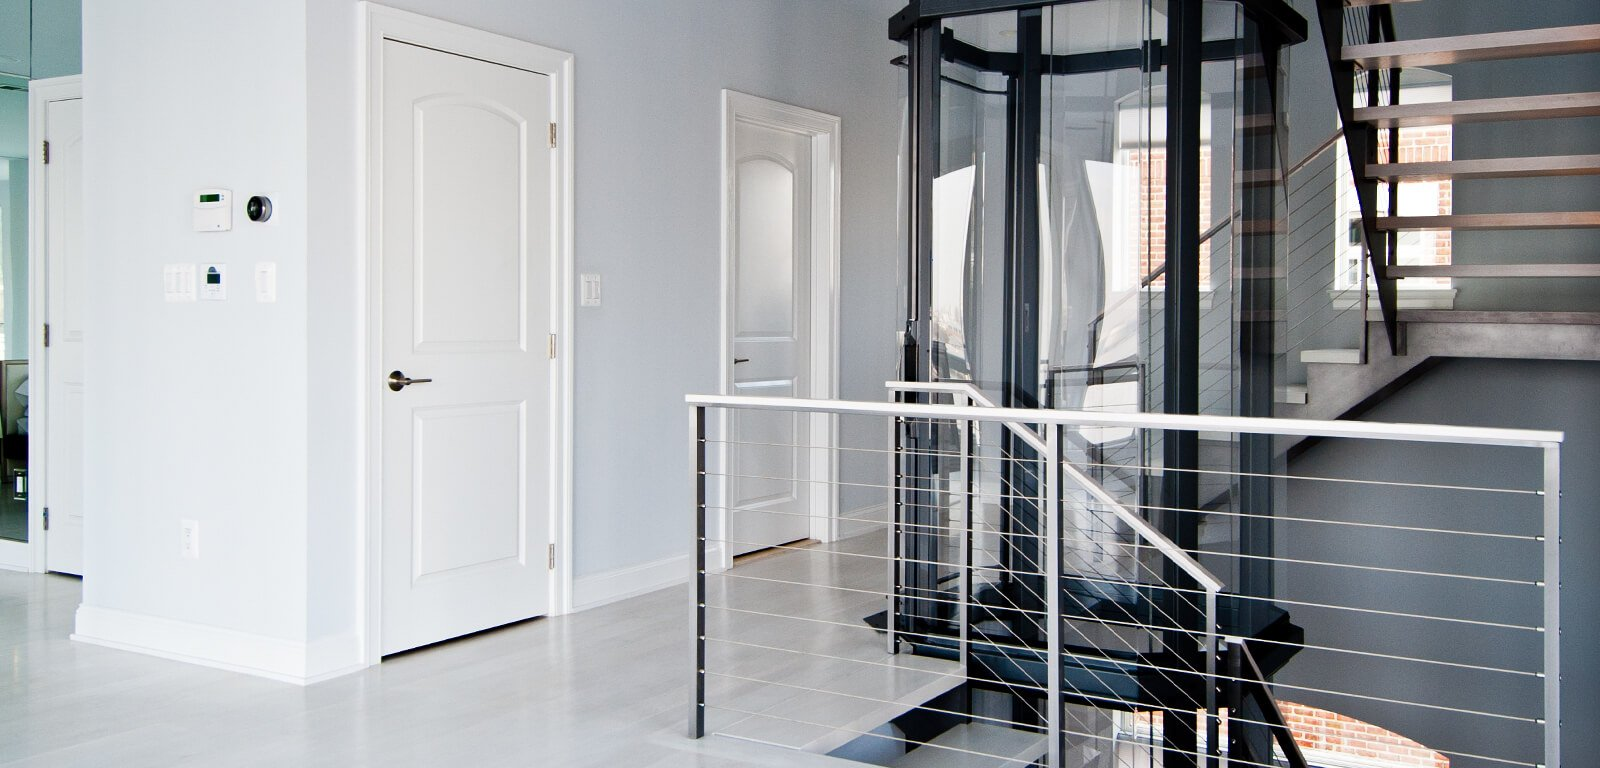 Home Elevator Company | Residential Home Elevators & Lifts